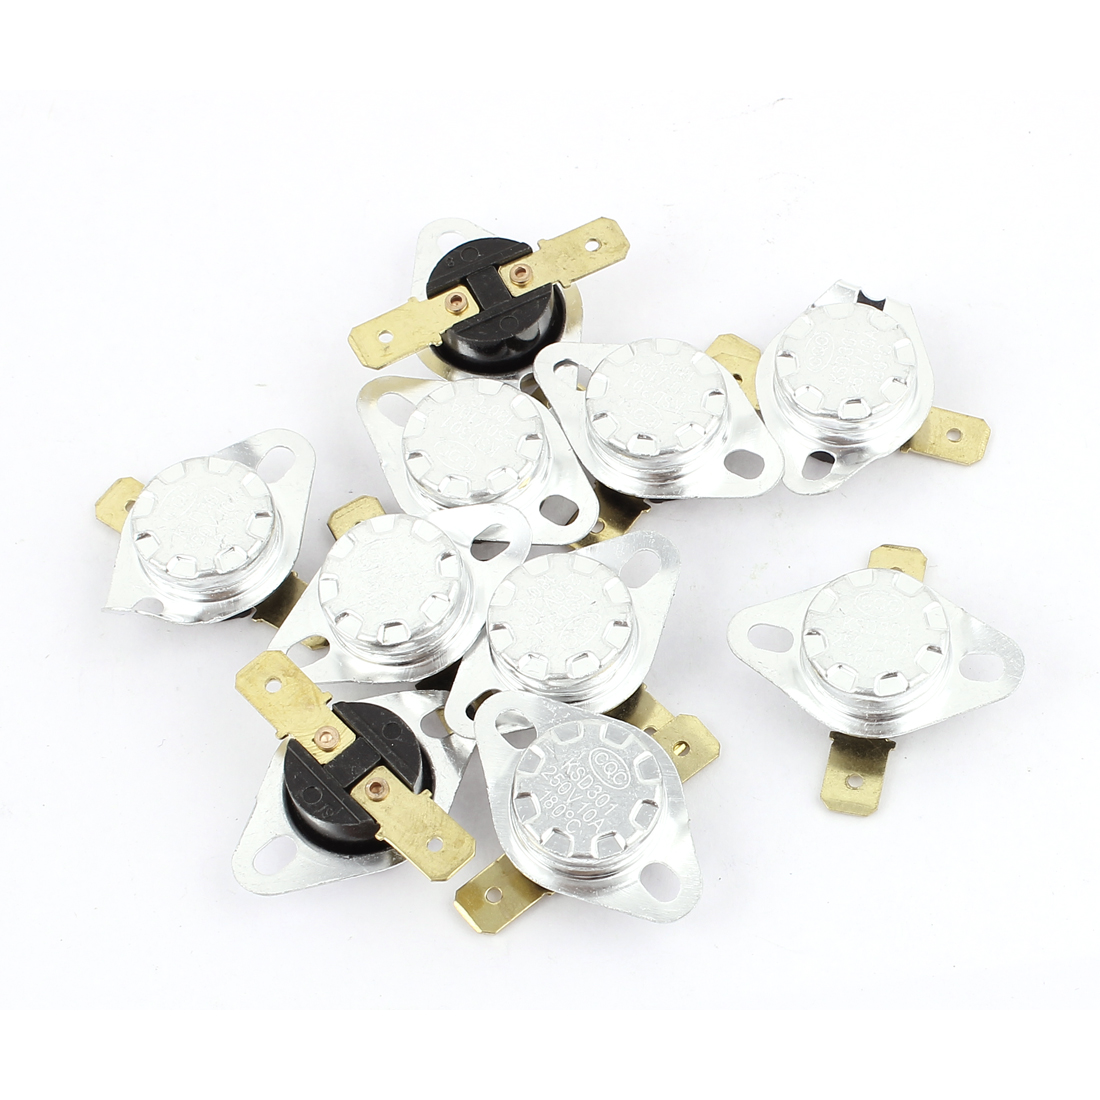 10pcs KSD301 AC 250V 10A 180 Celsius NO Temperature Controller Switch Thermostat